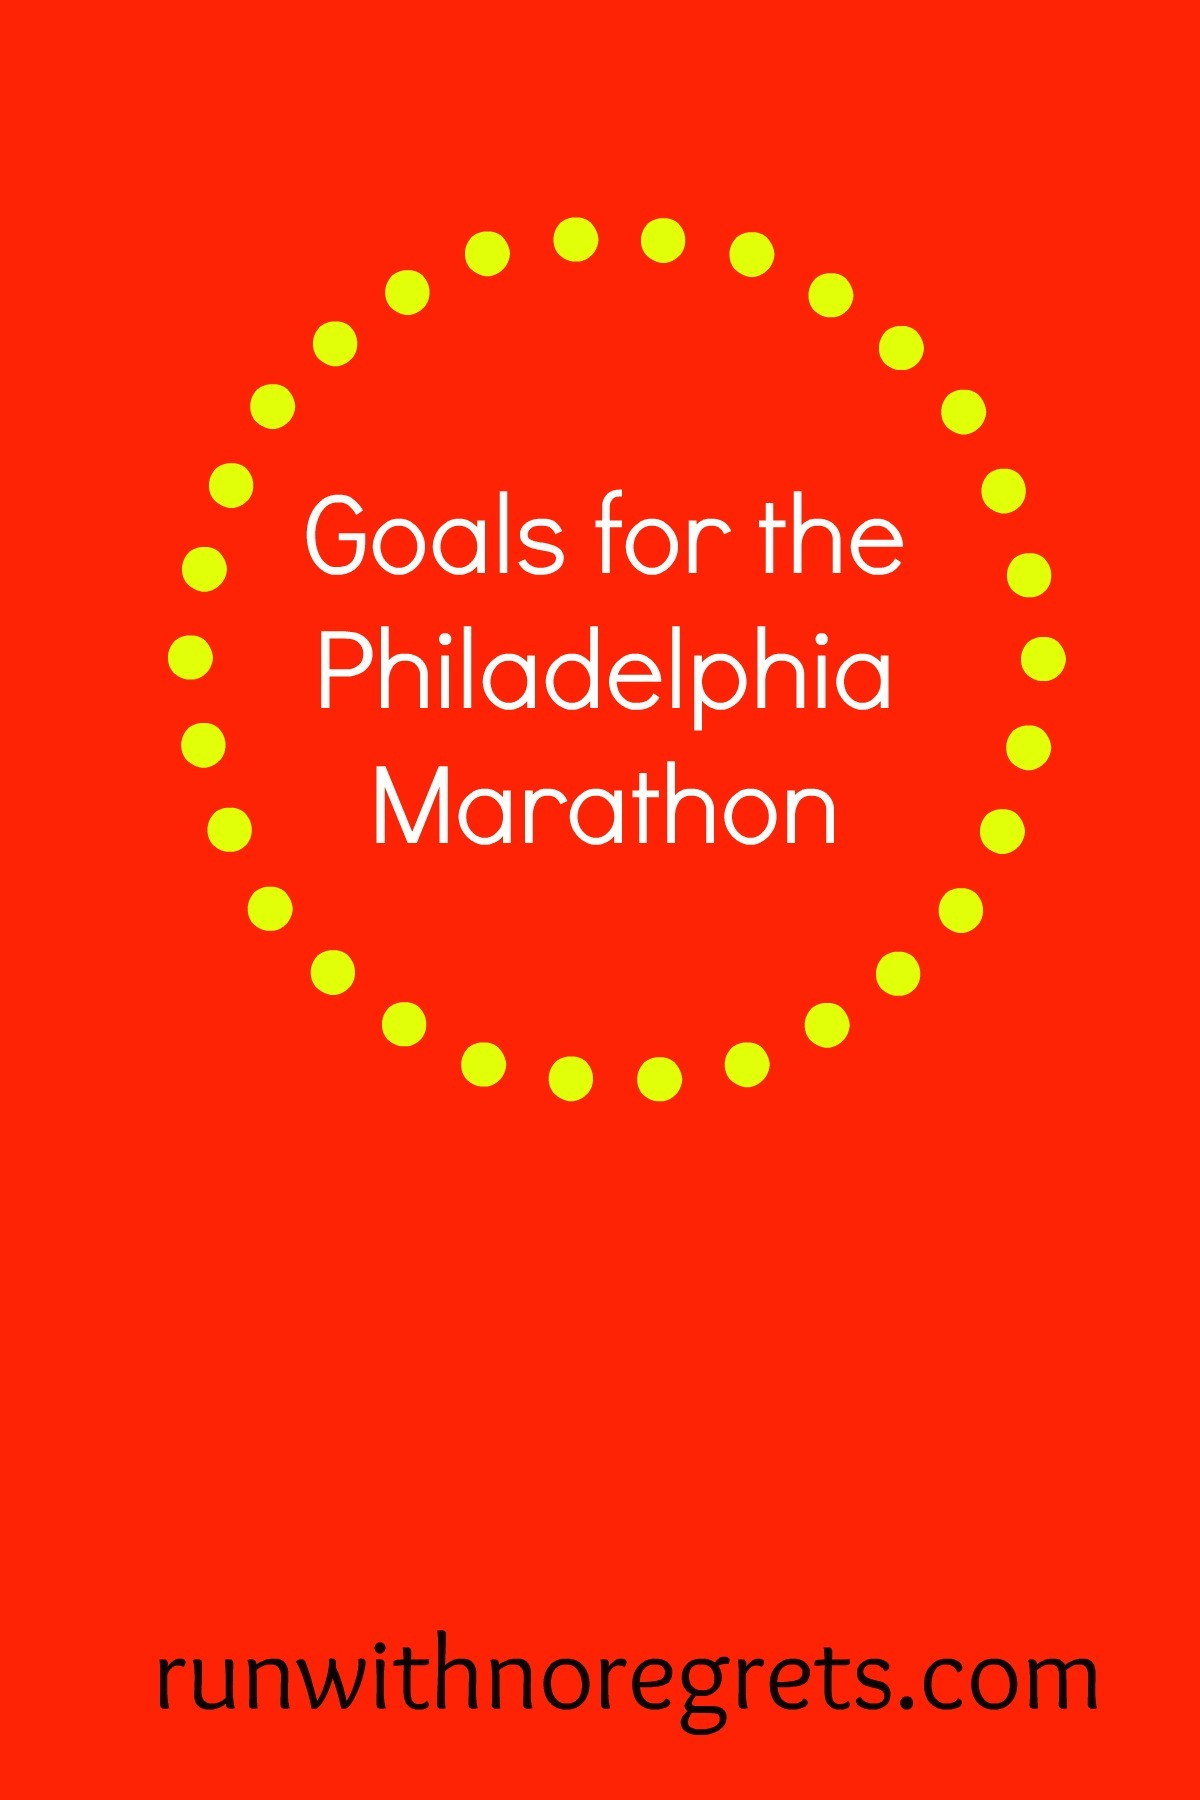 I will be running my very first marathon on November 20, 2016 - the Philly Marathon! Check out my goals for the race and more running adventures at runwithnoregrets.com!